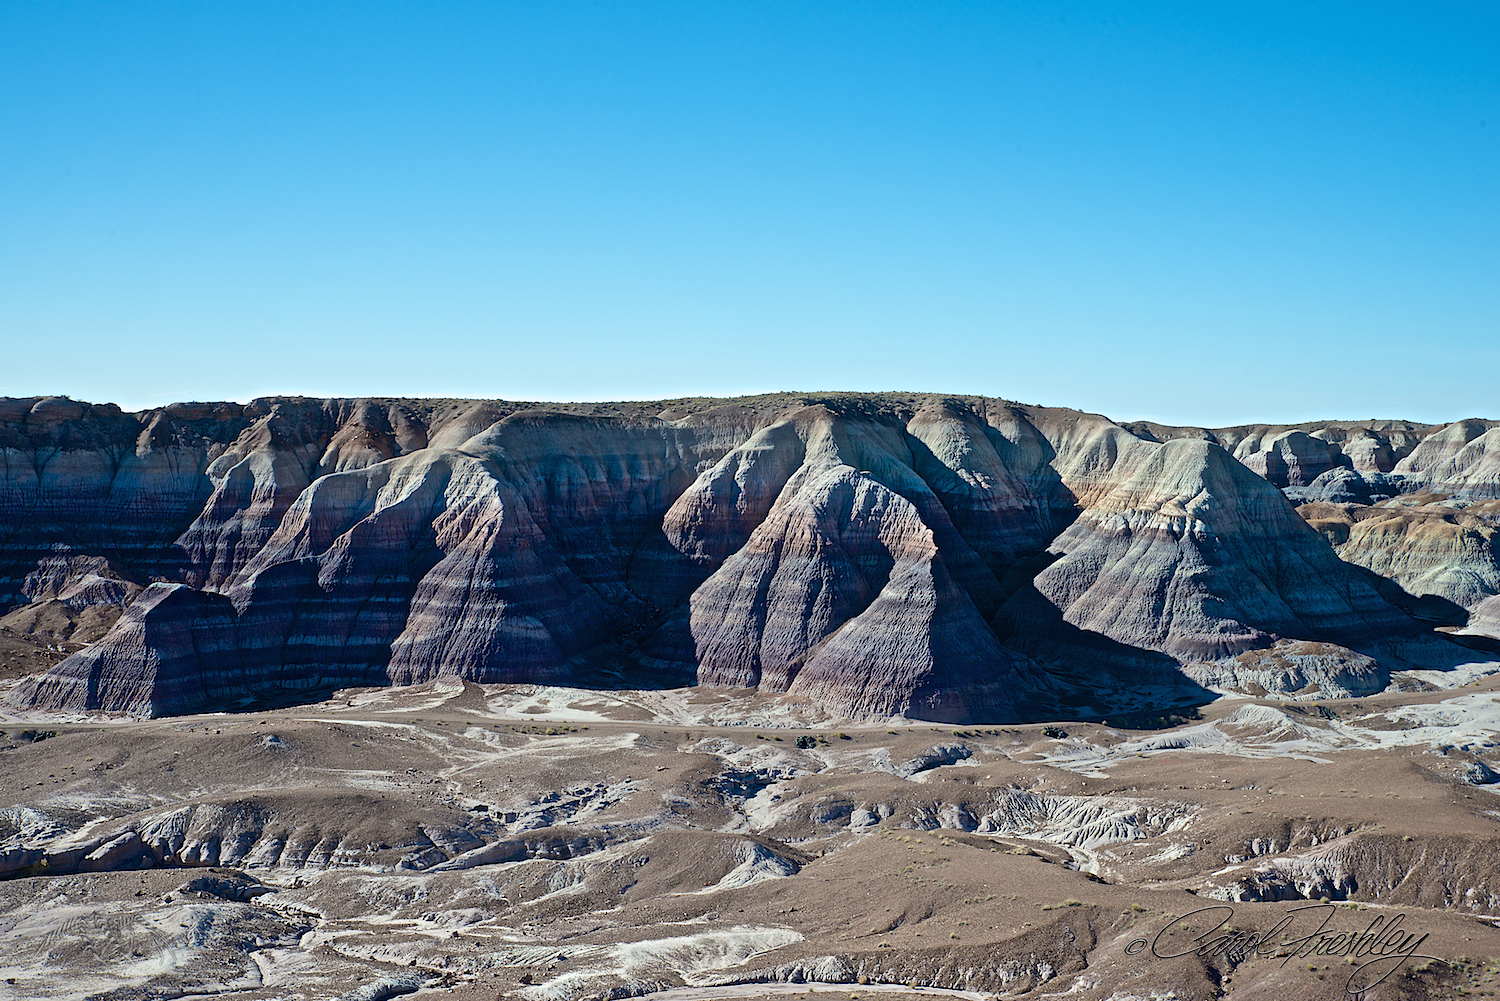 Blue Mesa. There is a 3 mile loop trail along the bottom that, from what we could see, was paved!! I would love to take the trail next time and get photos looking up instead of down.